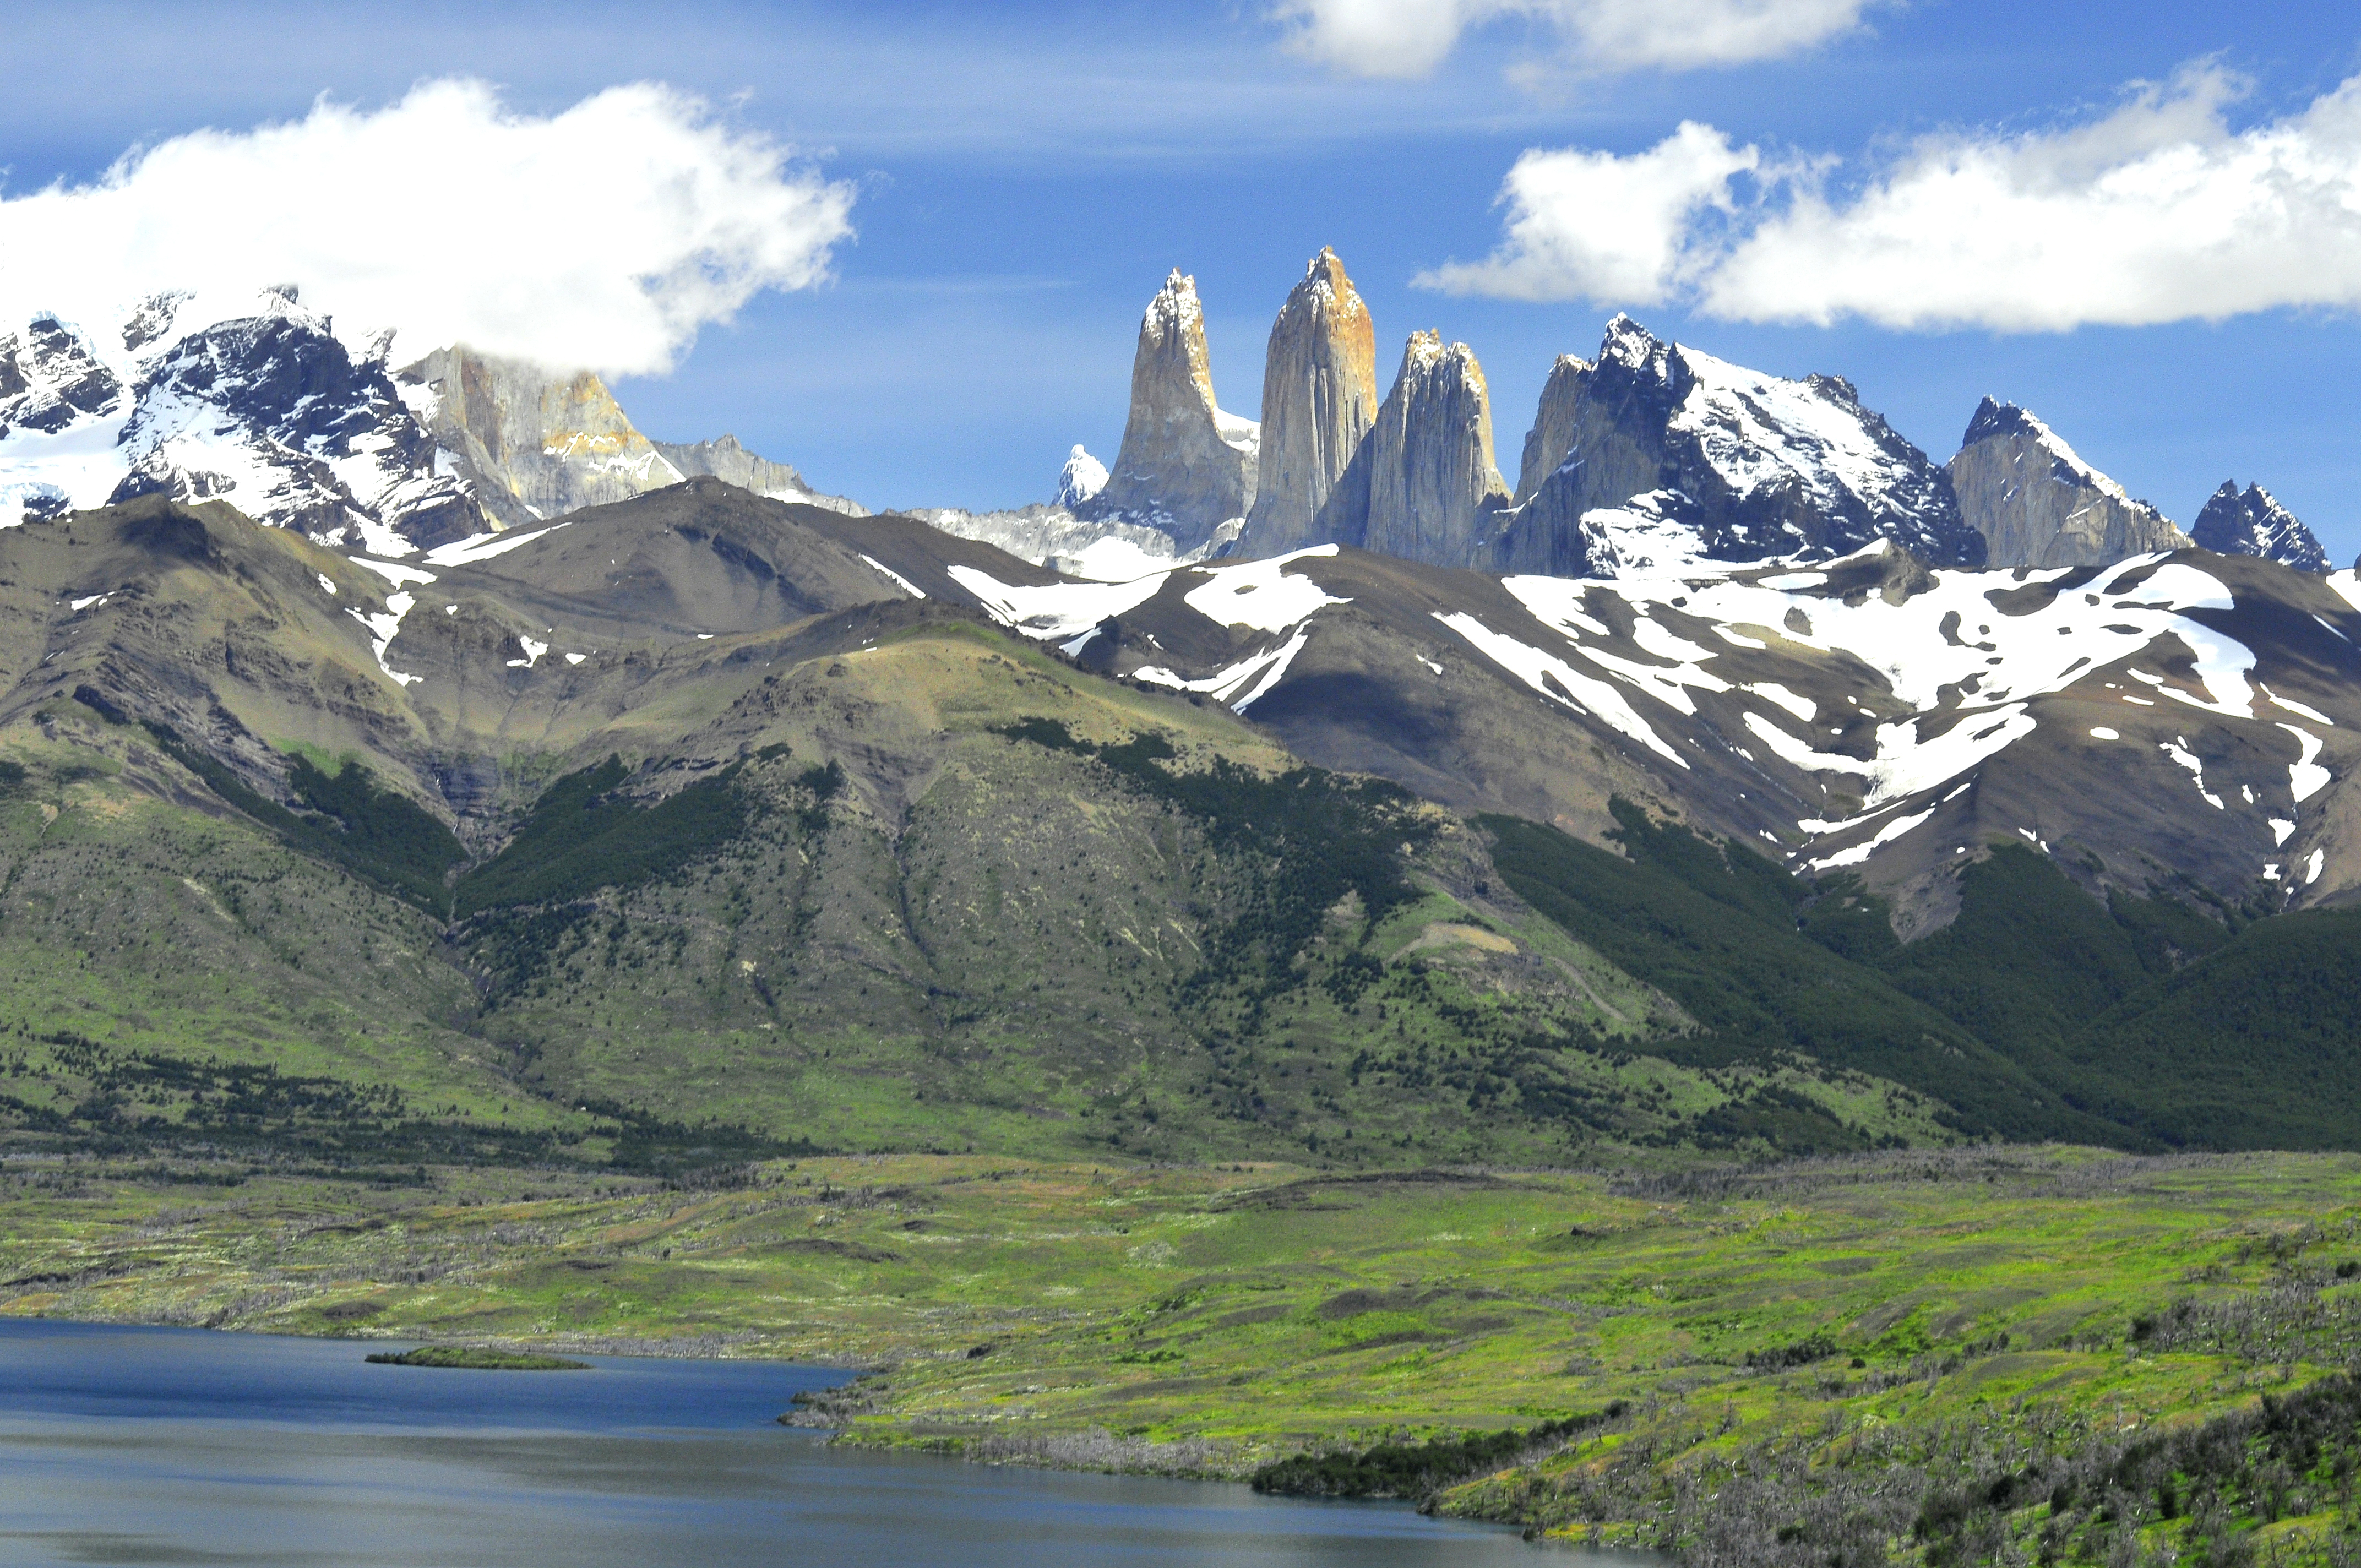 Torres del Paine National Park – Travel guide at Wikivoyage